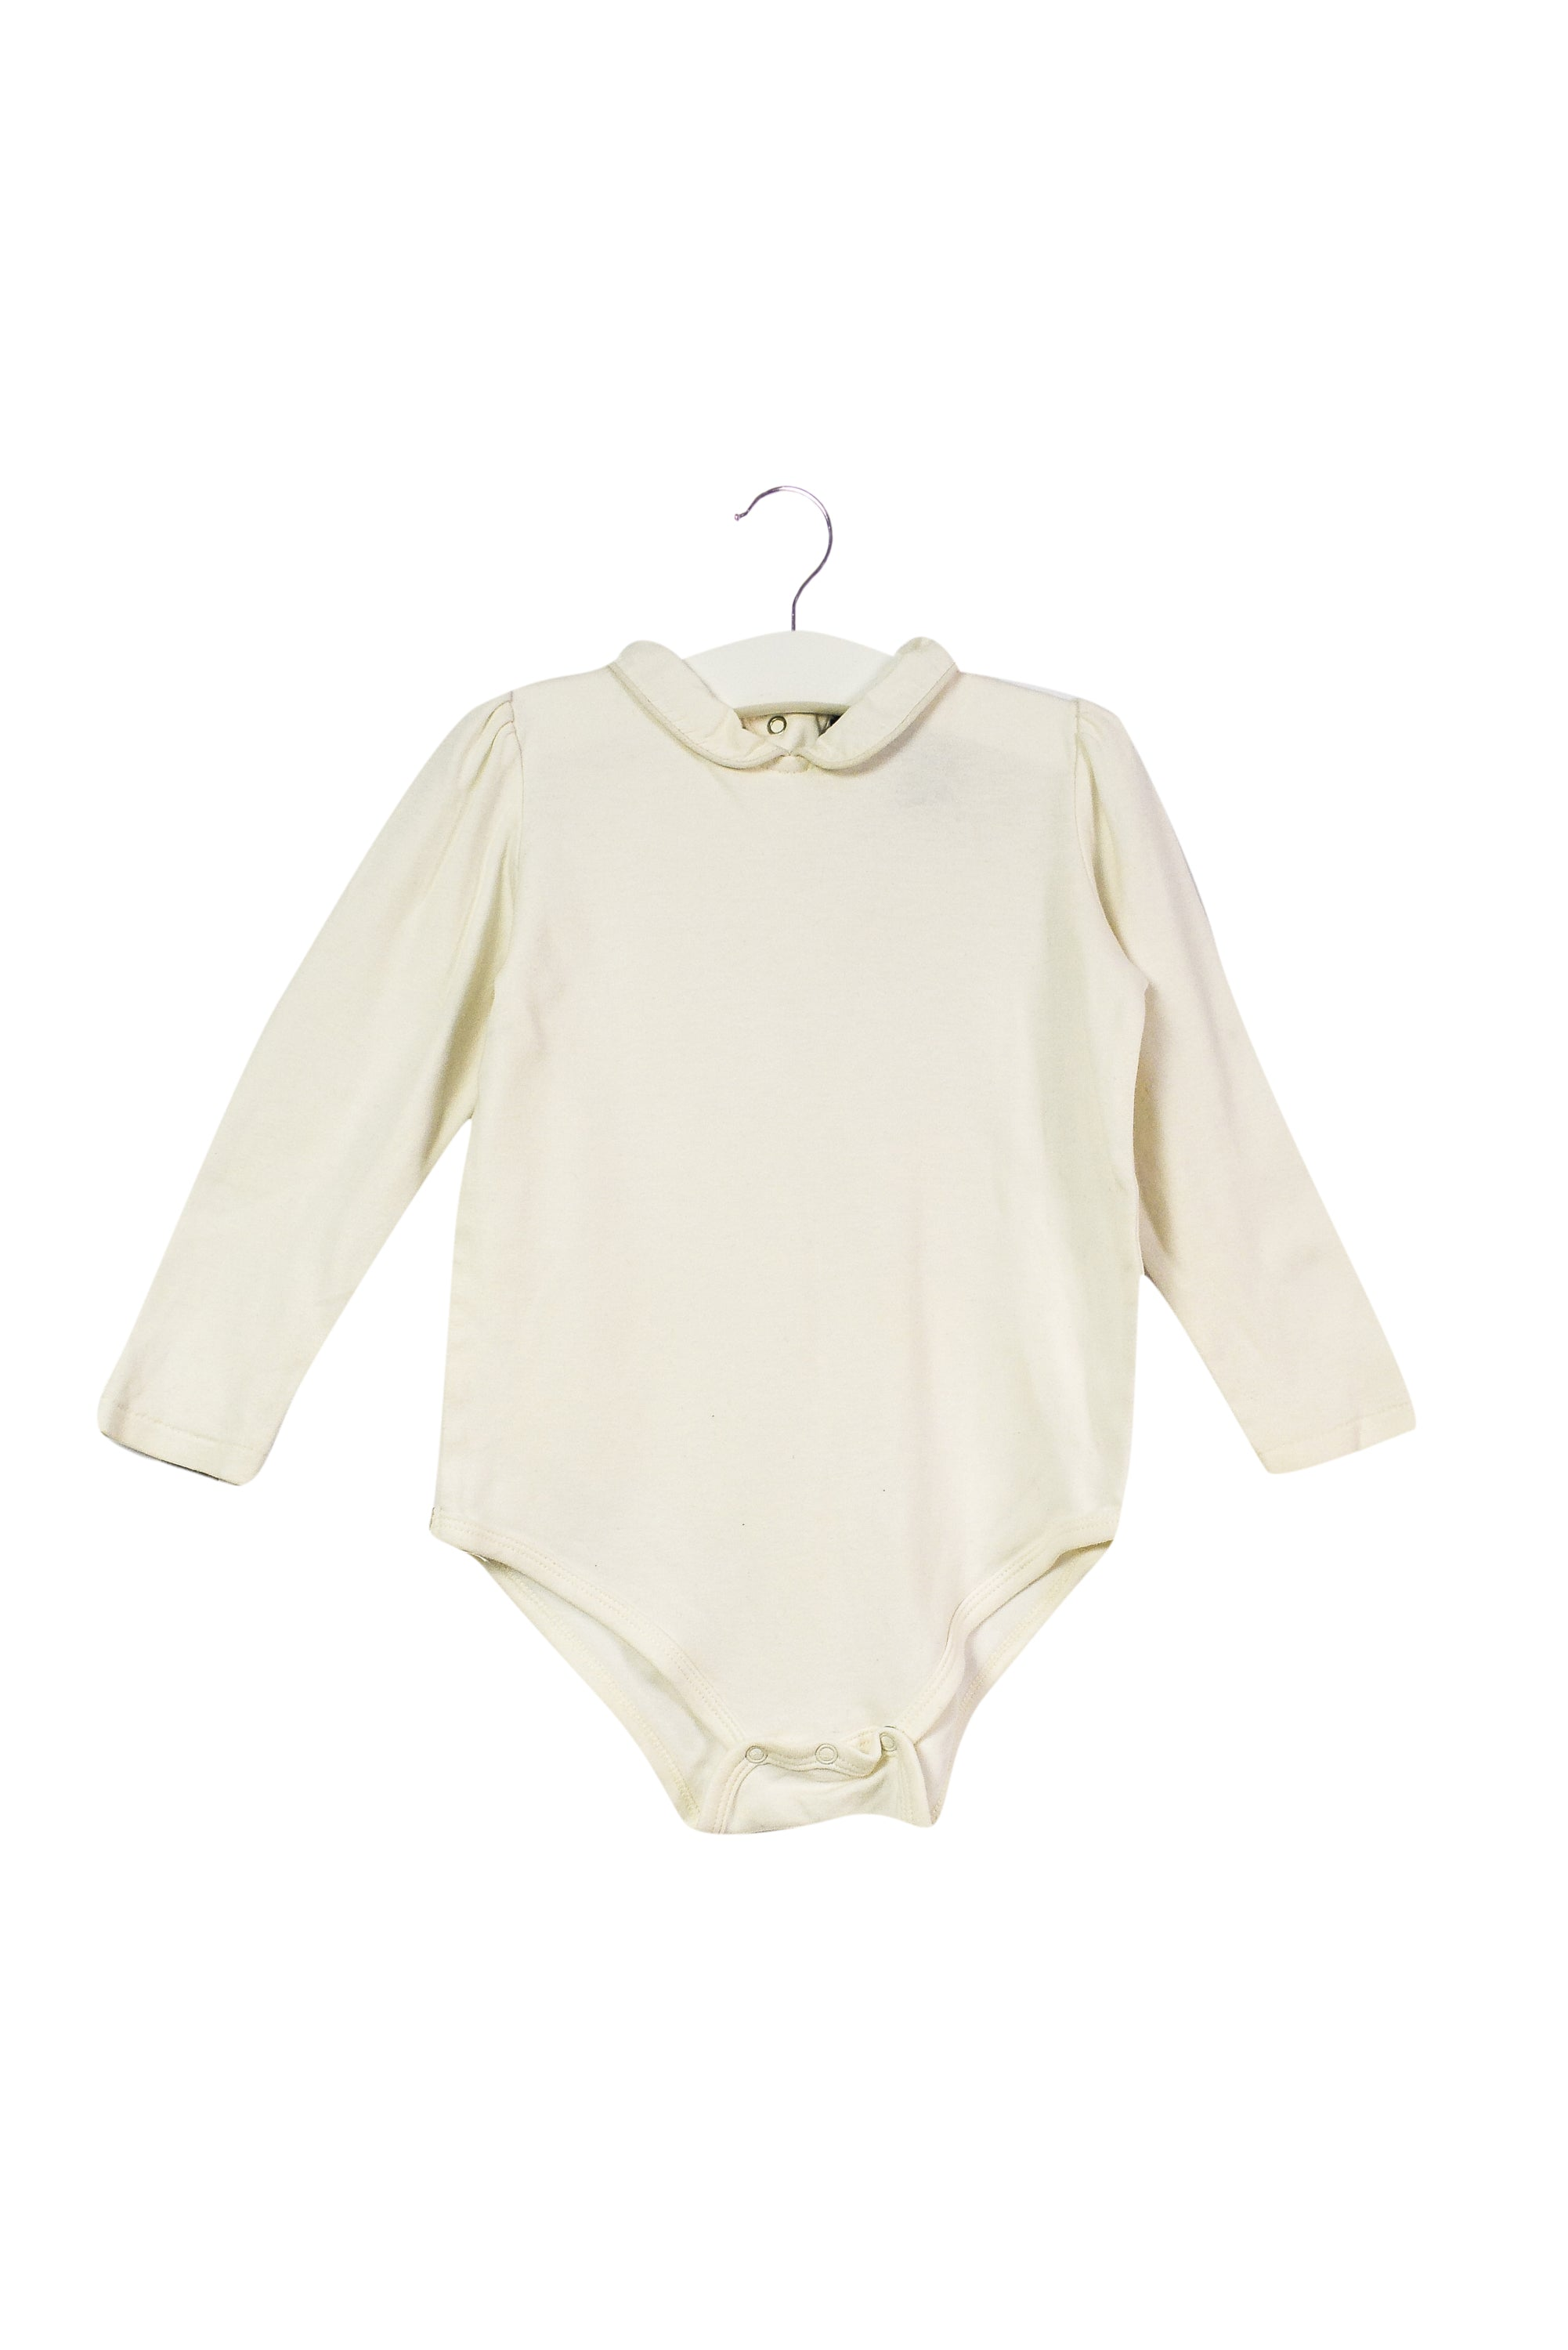 10042563 Ralph Lauren Baby~Bodysuit 24M at Retykle